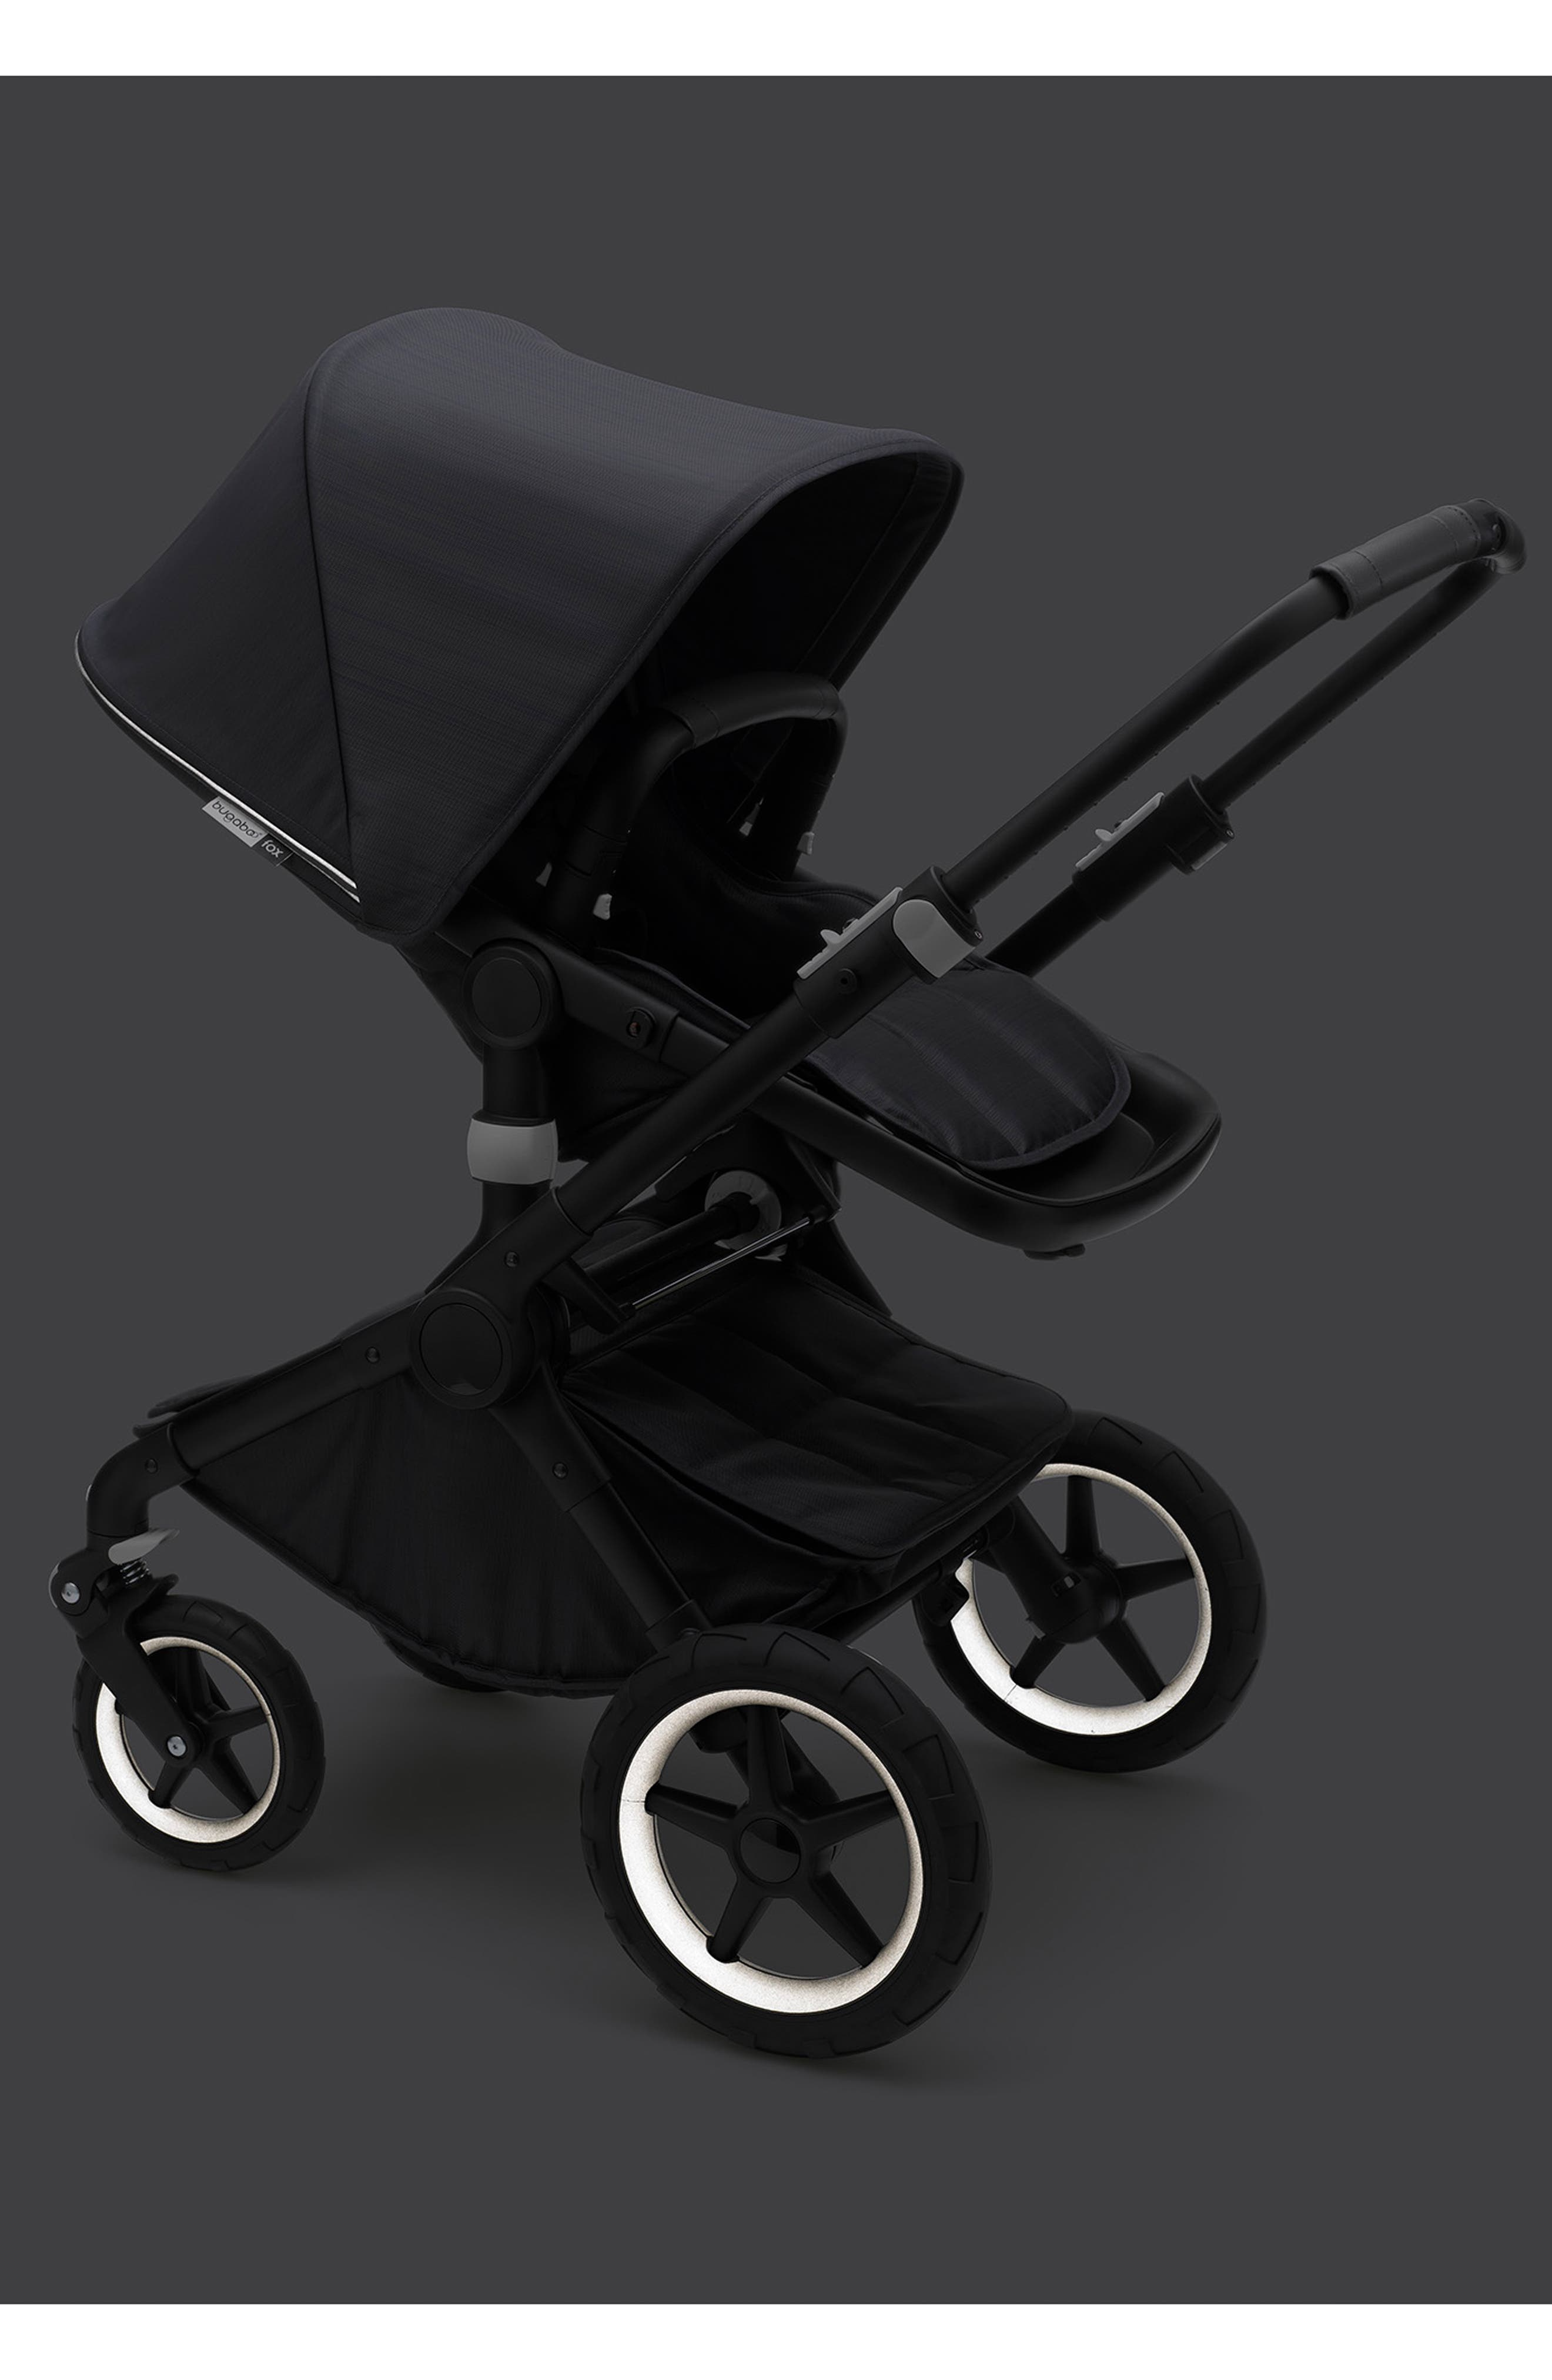 Fox Stellar Complete Reflective Stroller with Bassinet,                             Alternate thumbnail 4, color,                             MIDNIGHT BLUE